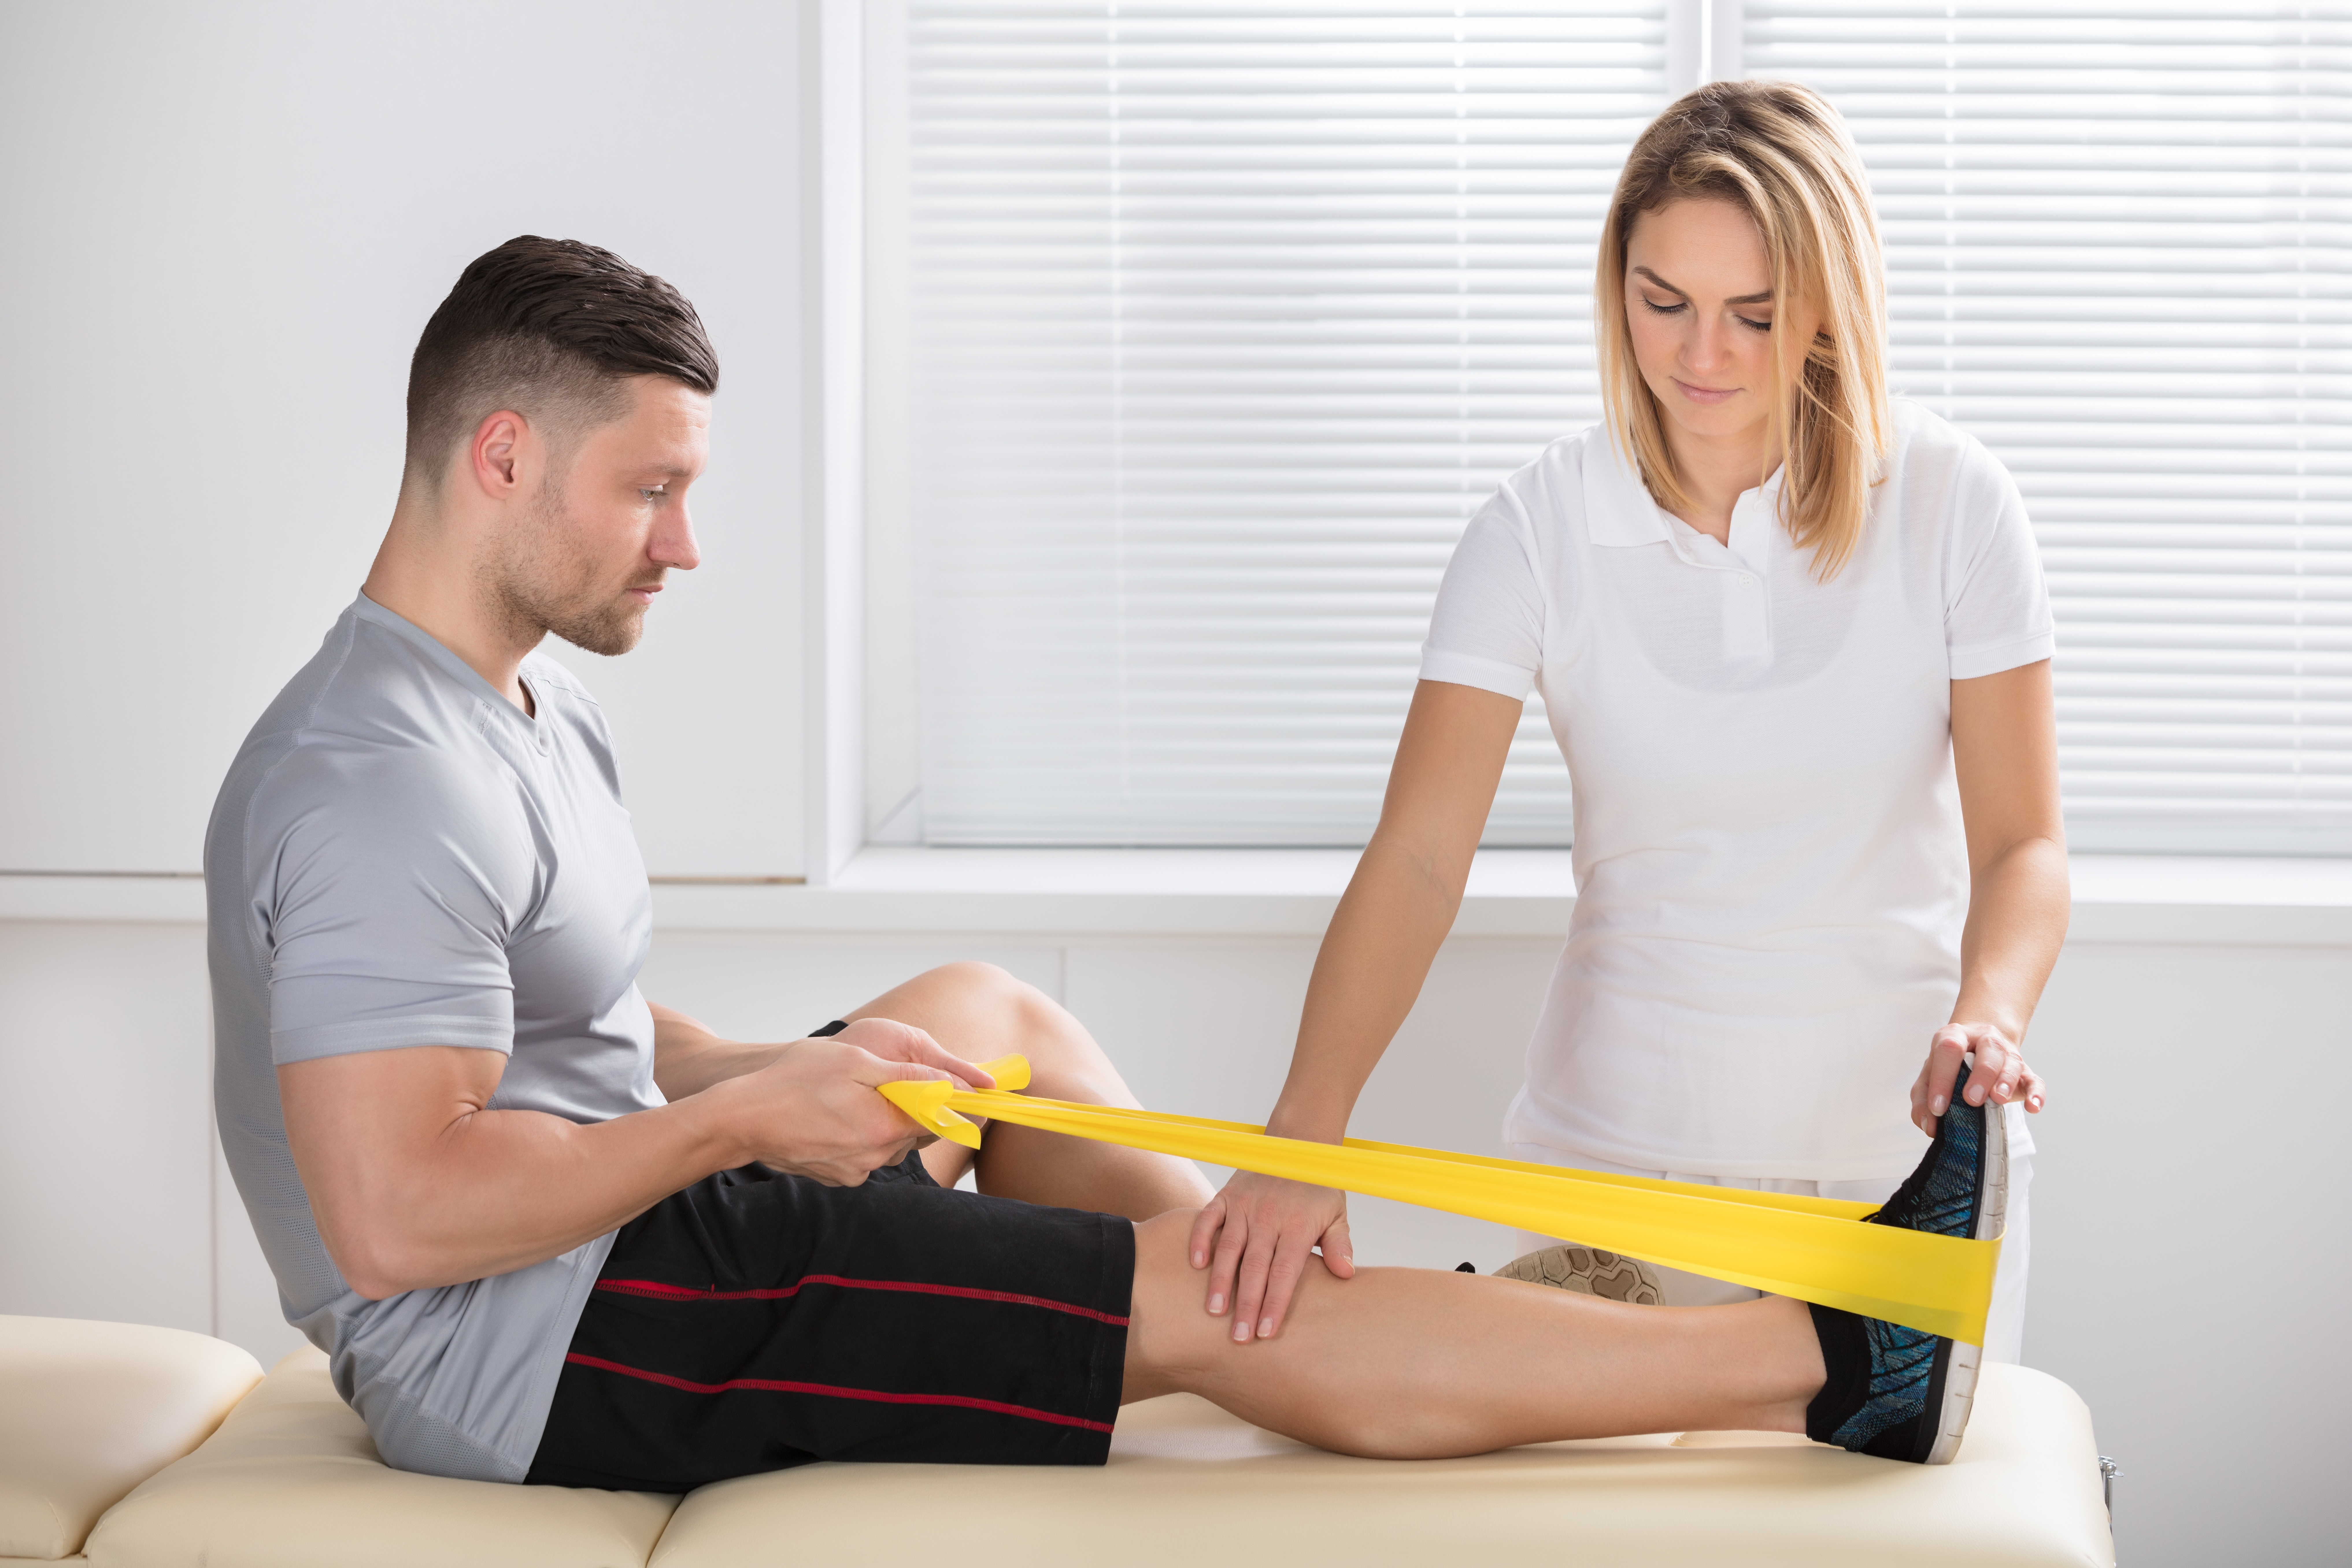 5 Booming Sports Medicine Career Paths